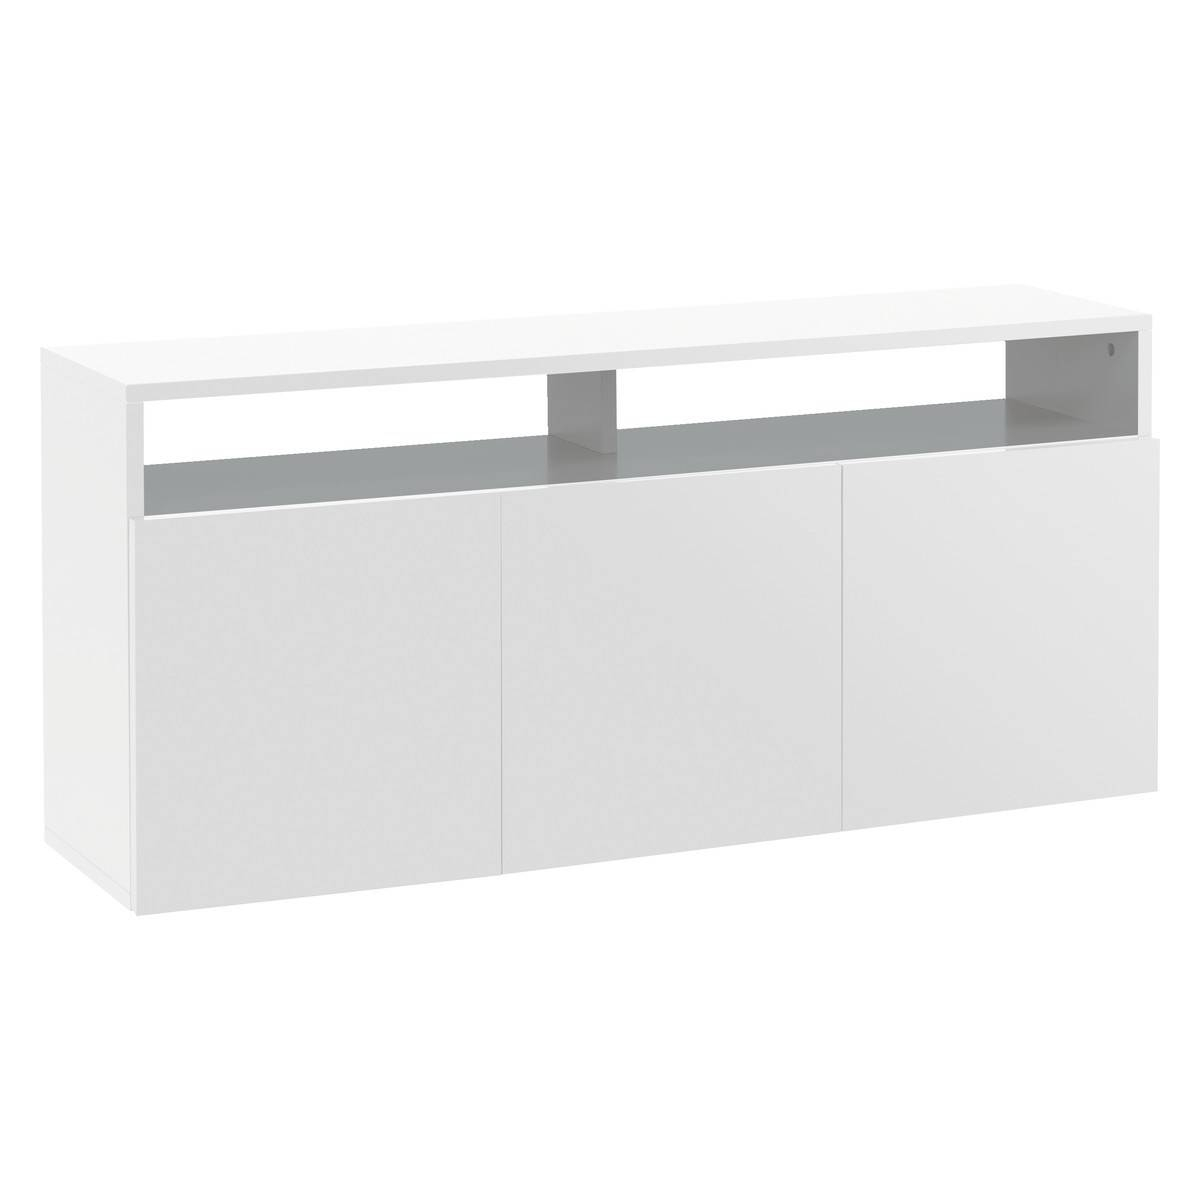 Kubrik White High Gloss Large Sideboard | Buy Now At Habitat Uk pertaining to White Wood Sideboards (Image 10 of 30)